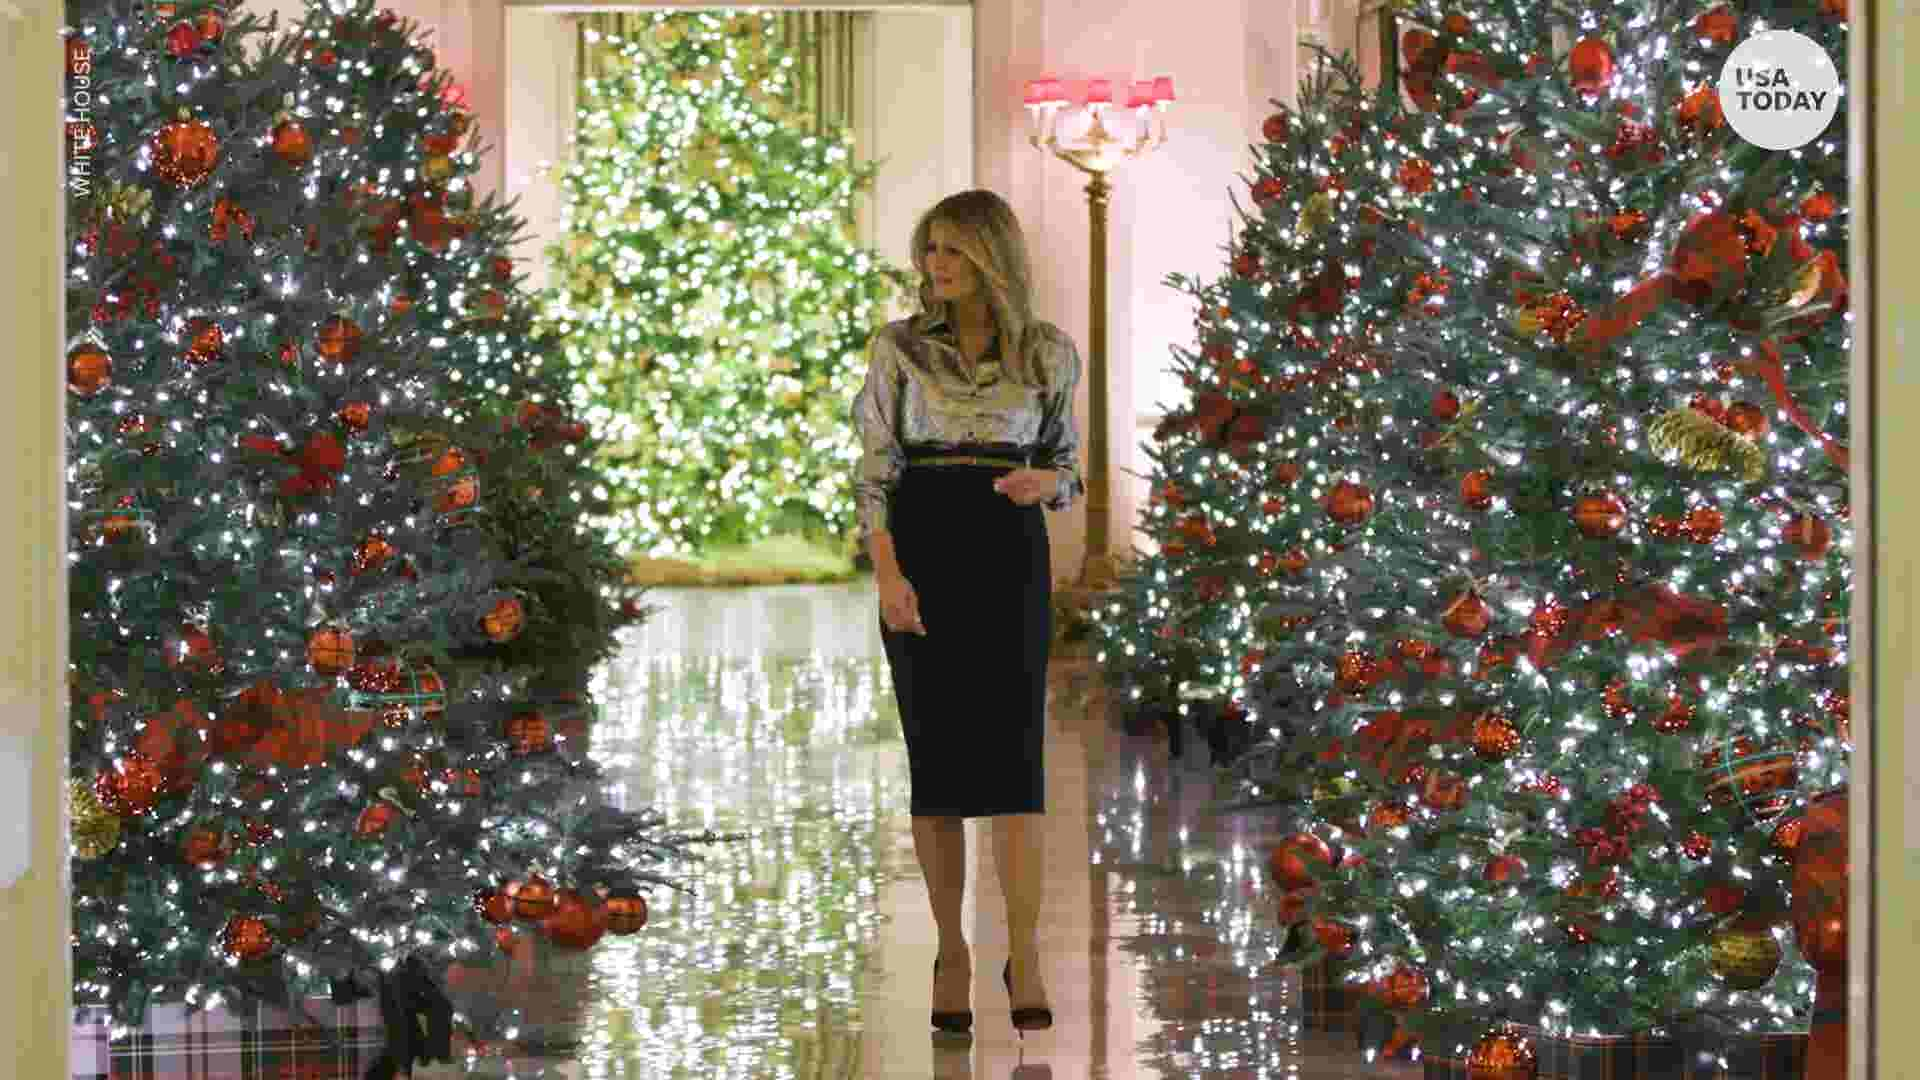 First lady unveils White House Christmas decorations after controversy